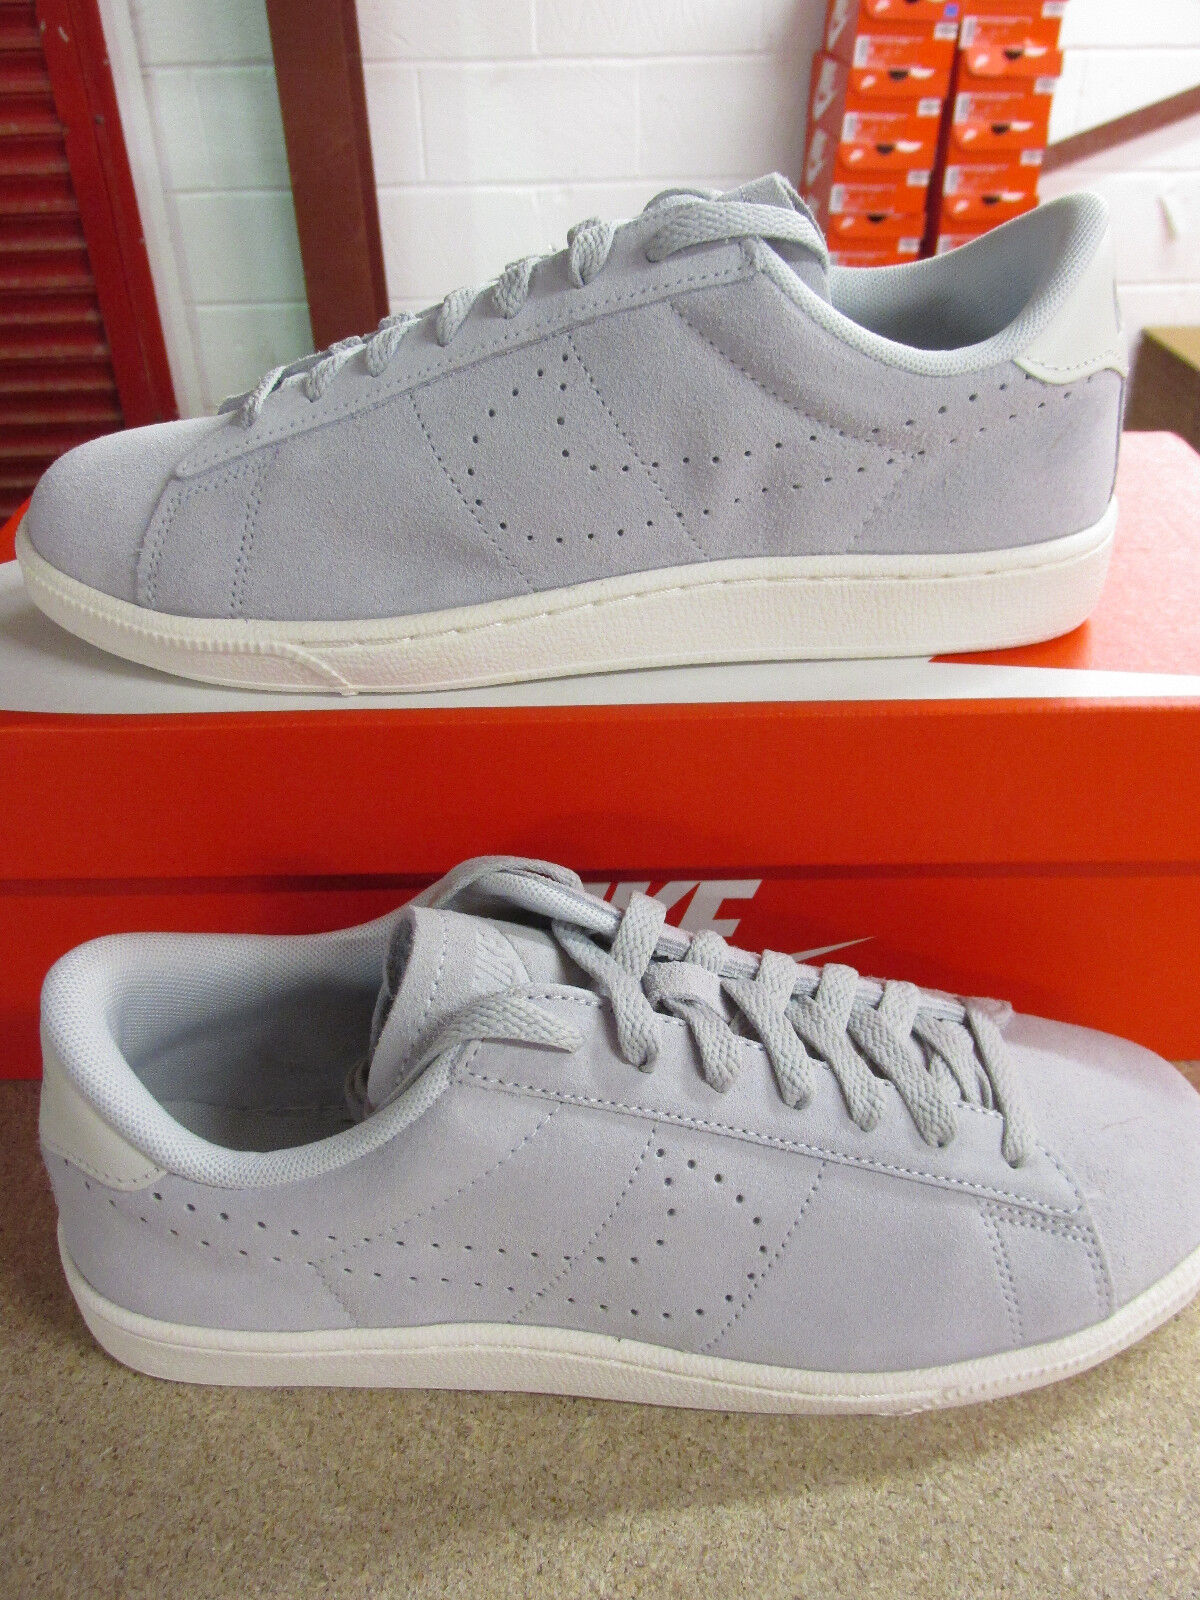 Nike Tennis Classic CS Suede mens Trainers 829351 001 Sneakers Shoes